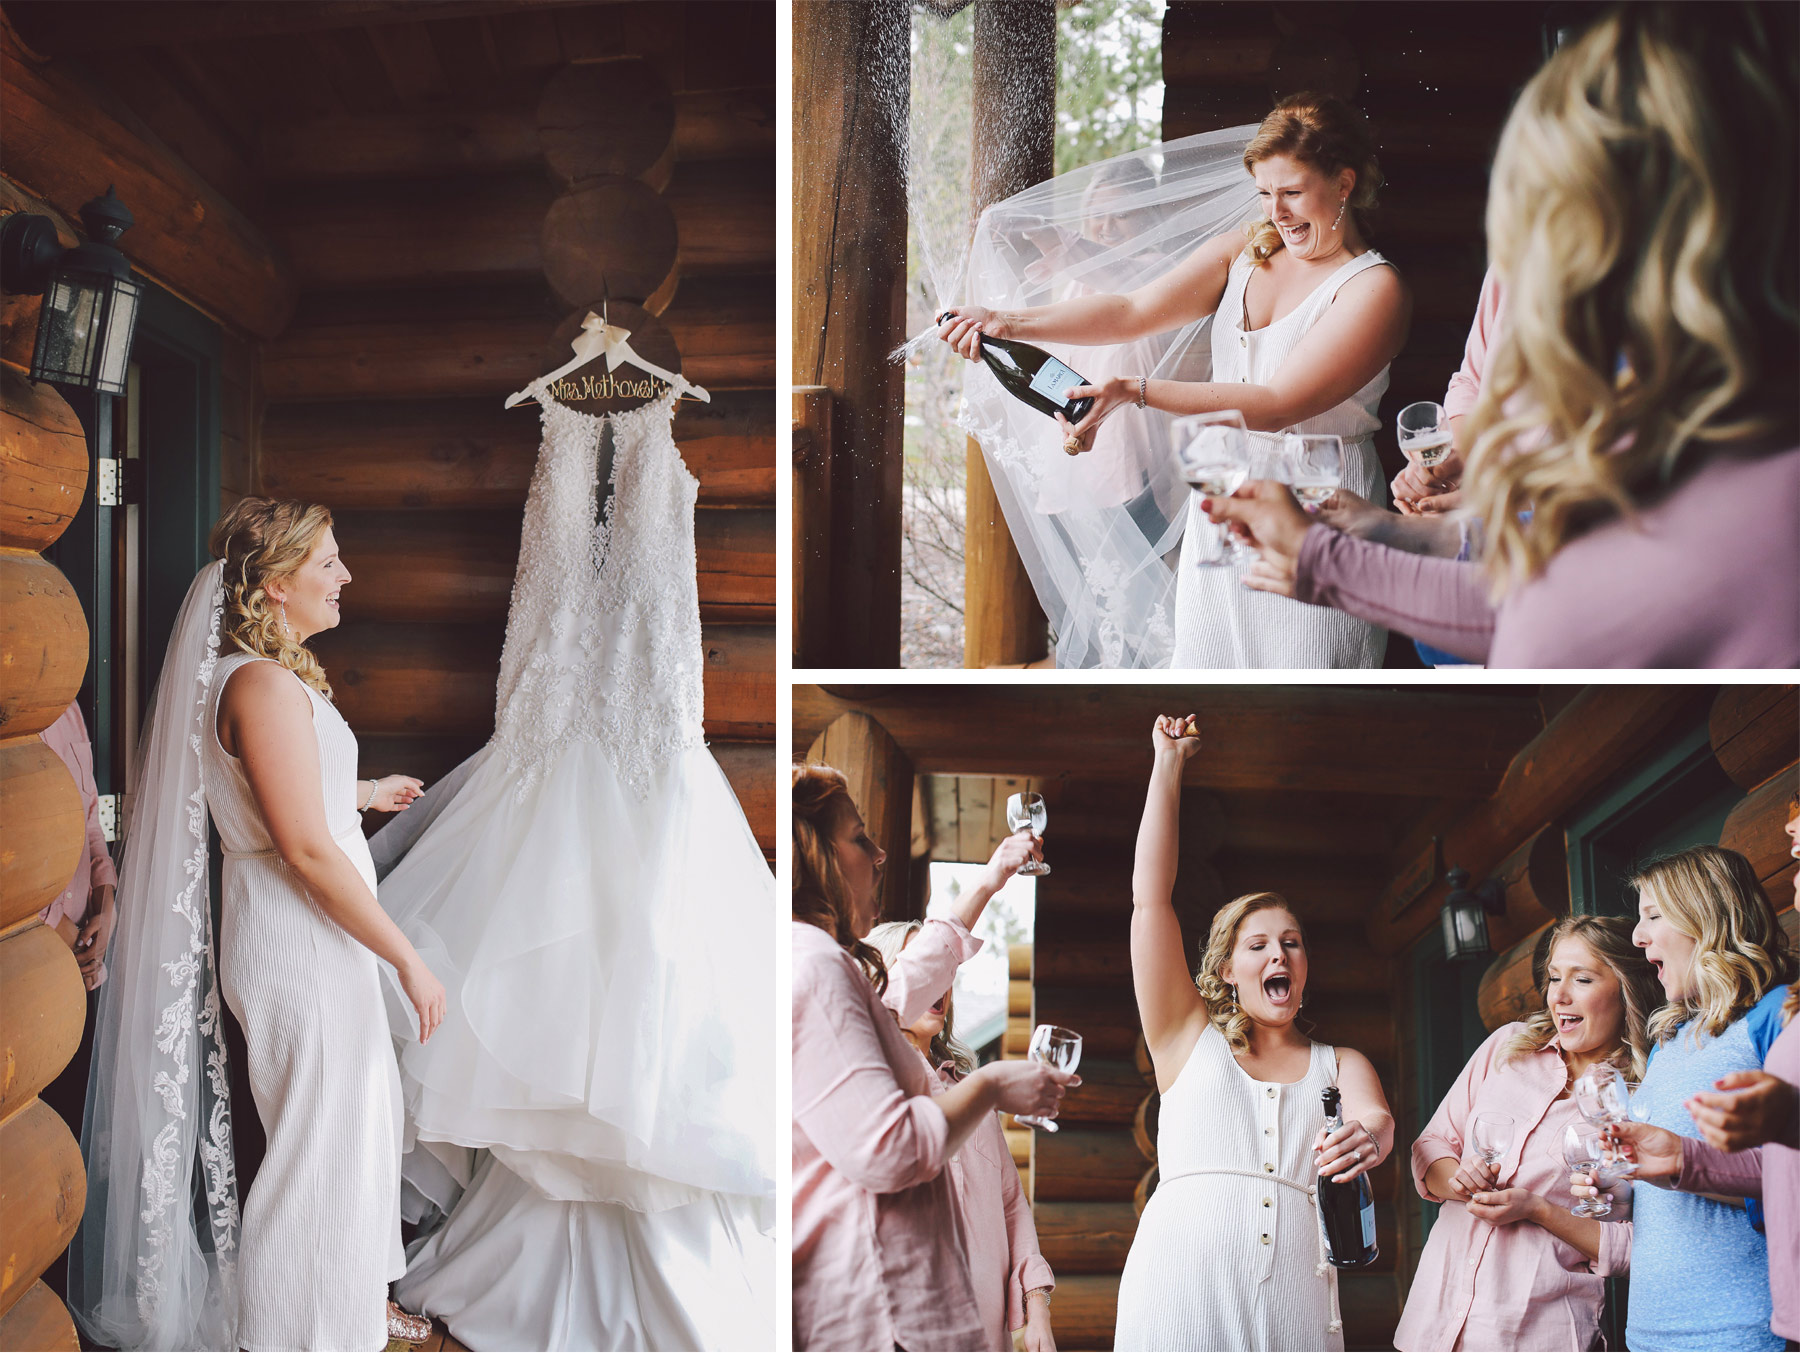 01-Minnesota-Wedding-by-Andrew-Vick-Photography-Grand-Superior-Lodge-Duluth-Two-Harbors-Dress-Champagne-Bridesmaids-Toast-Veronica-and-Tyler.jpg